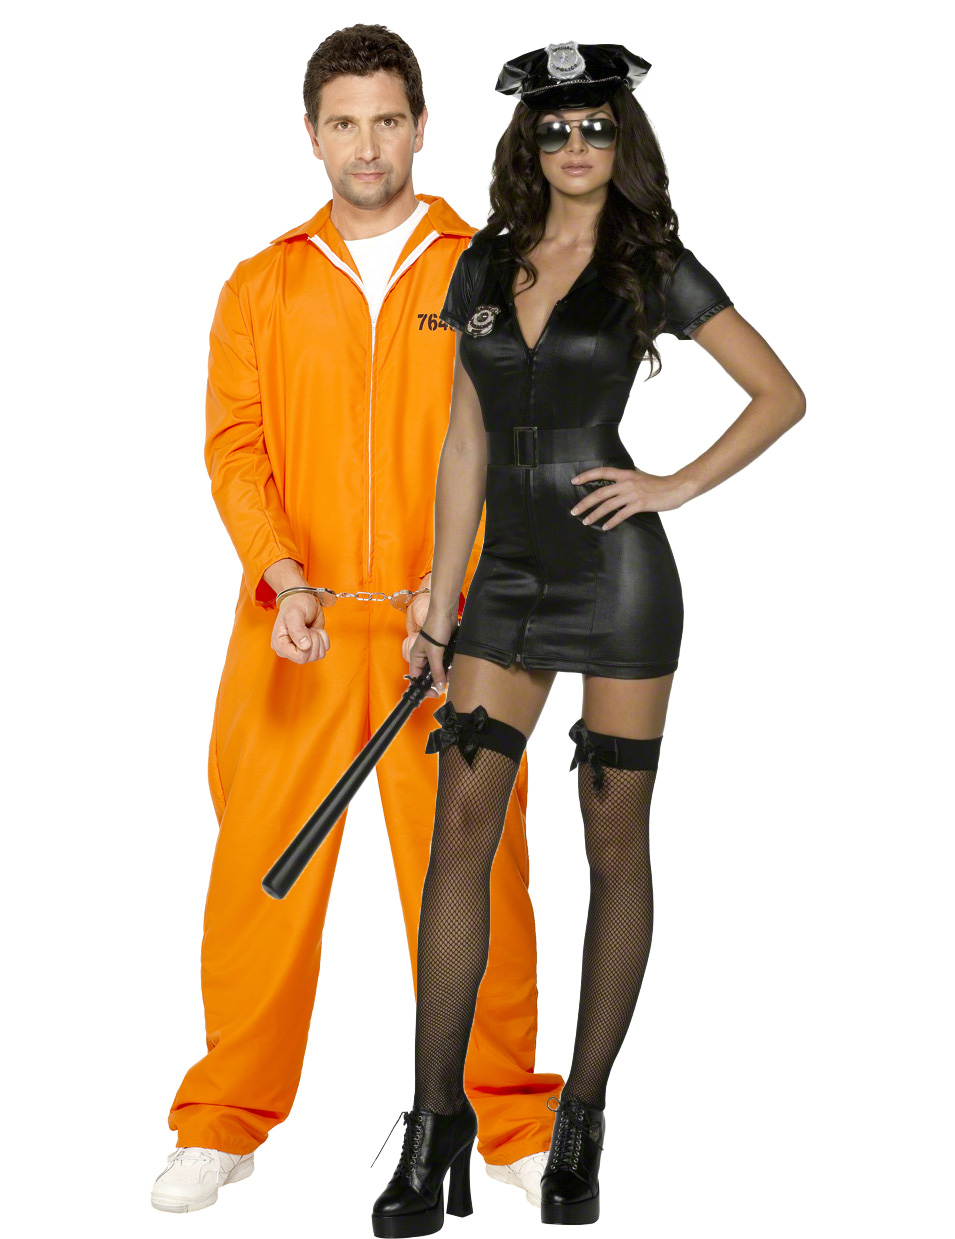 couples costumes on pinterest couple costumes gangsters and halloween couples. Black Bedroom Furniture Sets. Home Design Ideas